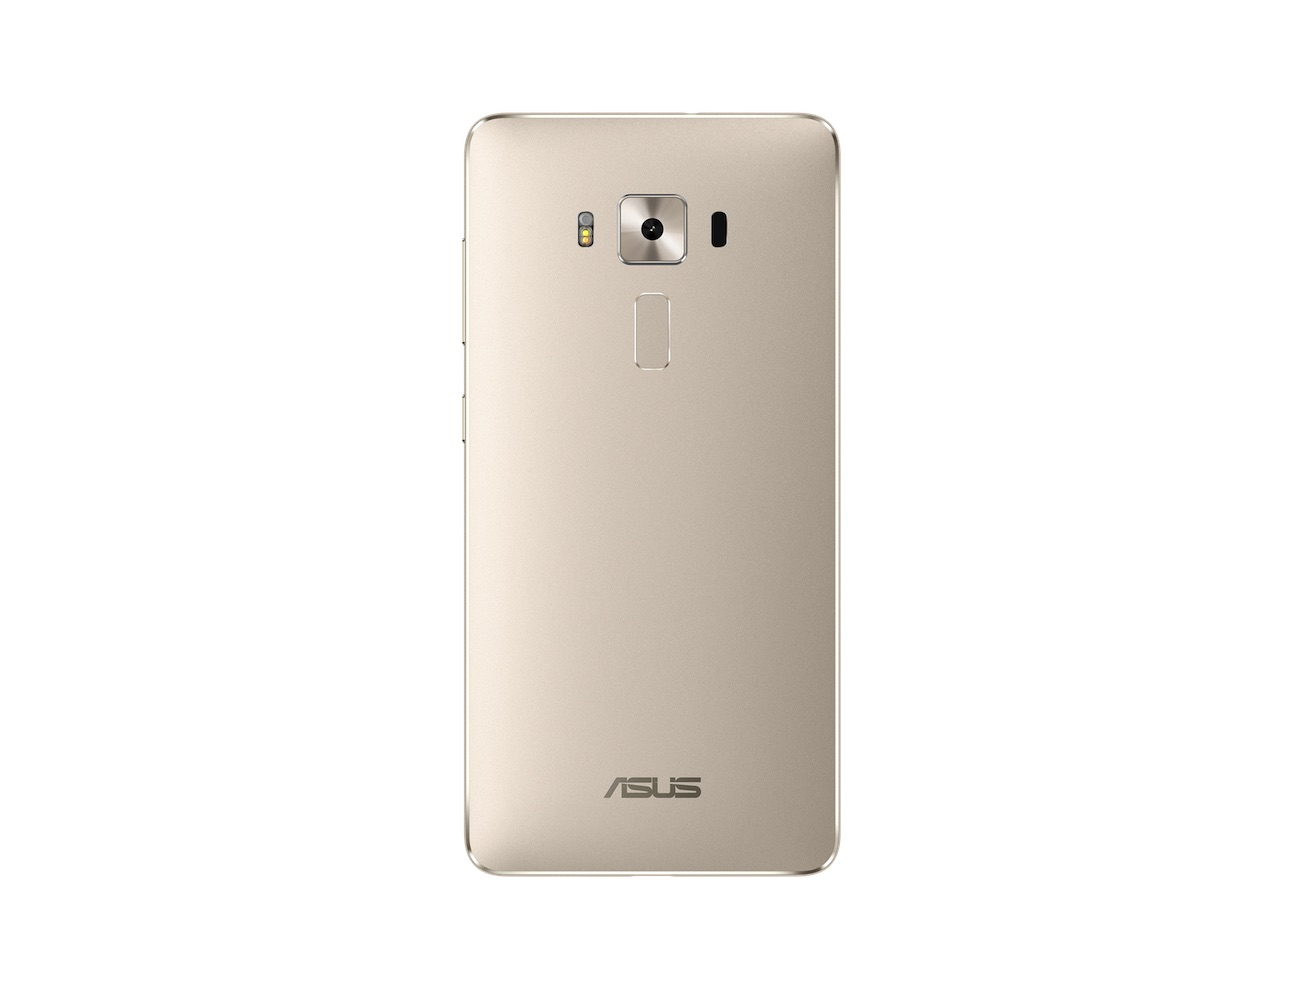 asus zenfone 3 deluxe smartphone gadget flow. Black Bedroom Furniture Sets. Home Design Ideas